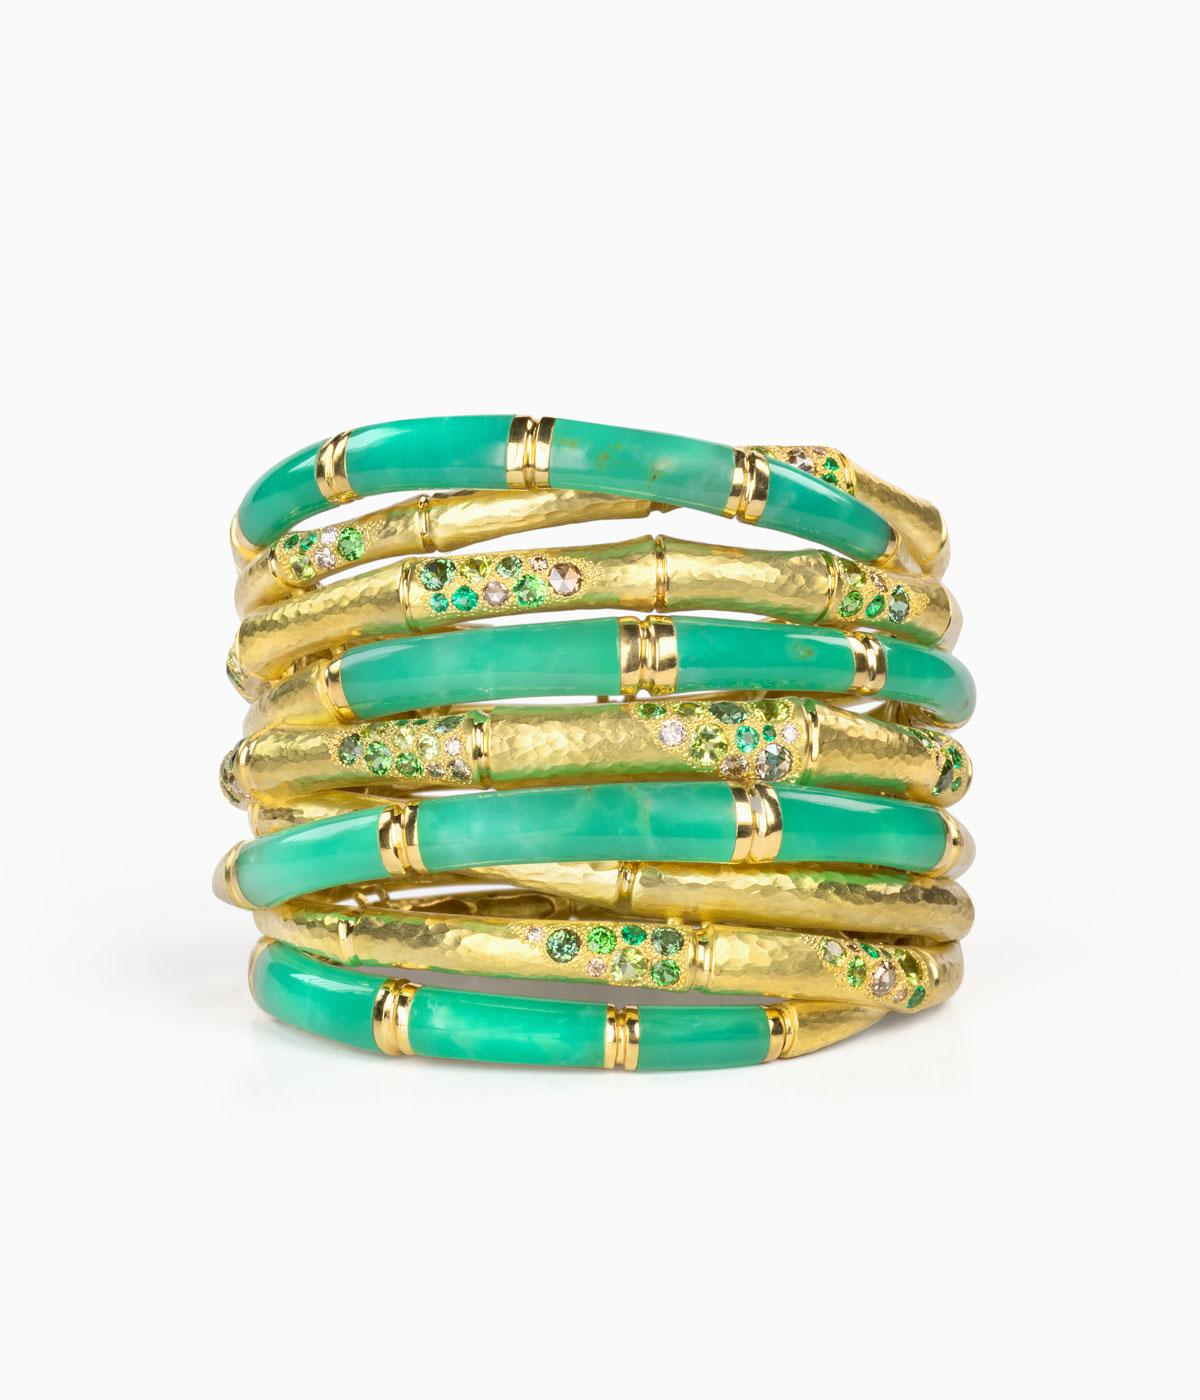 green and gold bracelet forms of gold twists